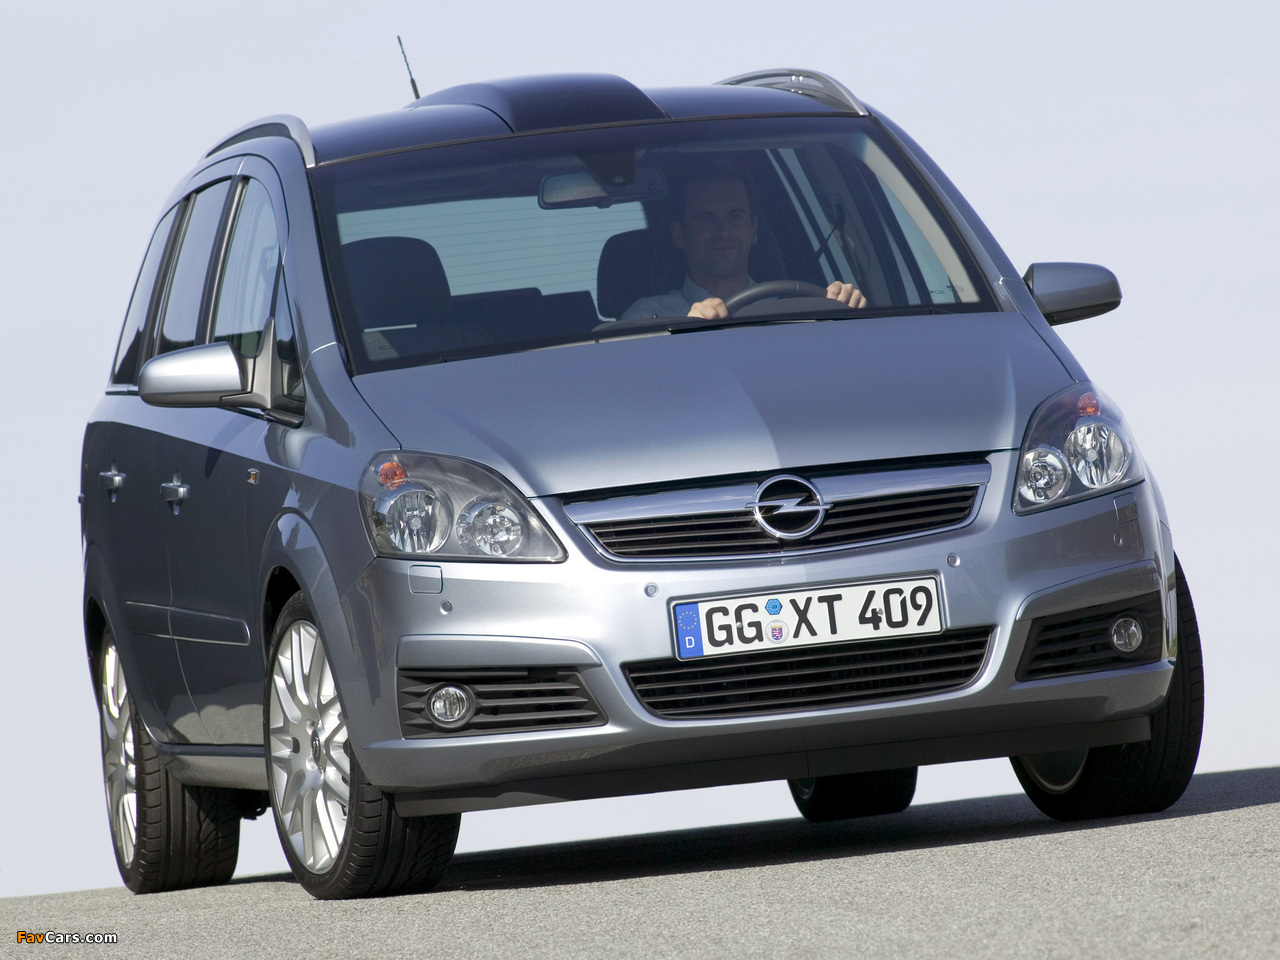 opel zafira 2 0 turbo b 2005 08 images 1280x960. Black Bedroom Furniture Sets. Home Design Ideas